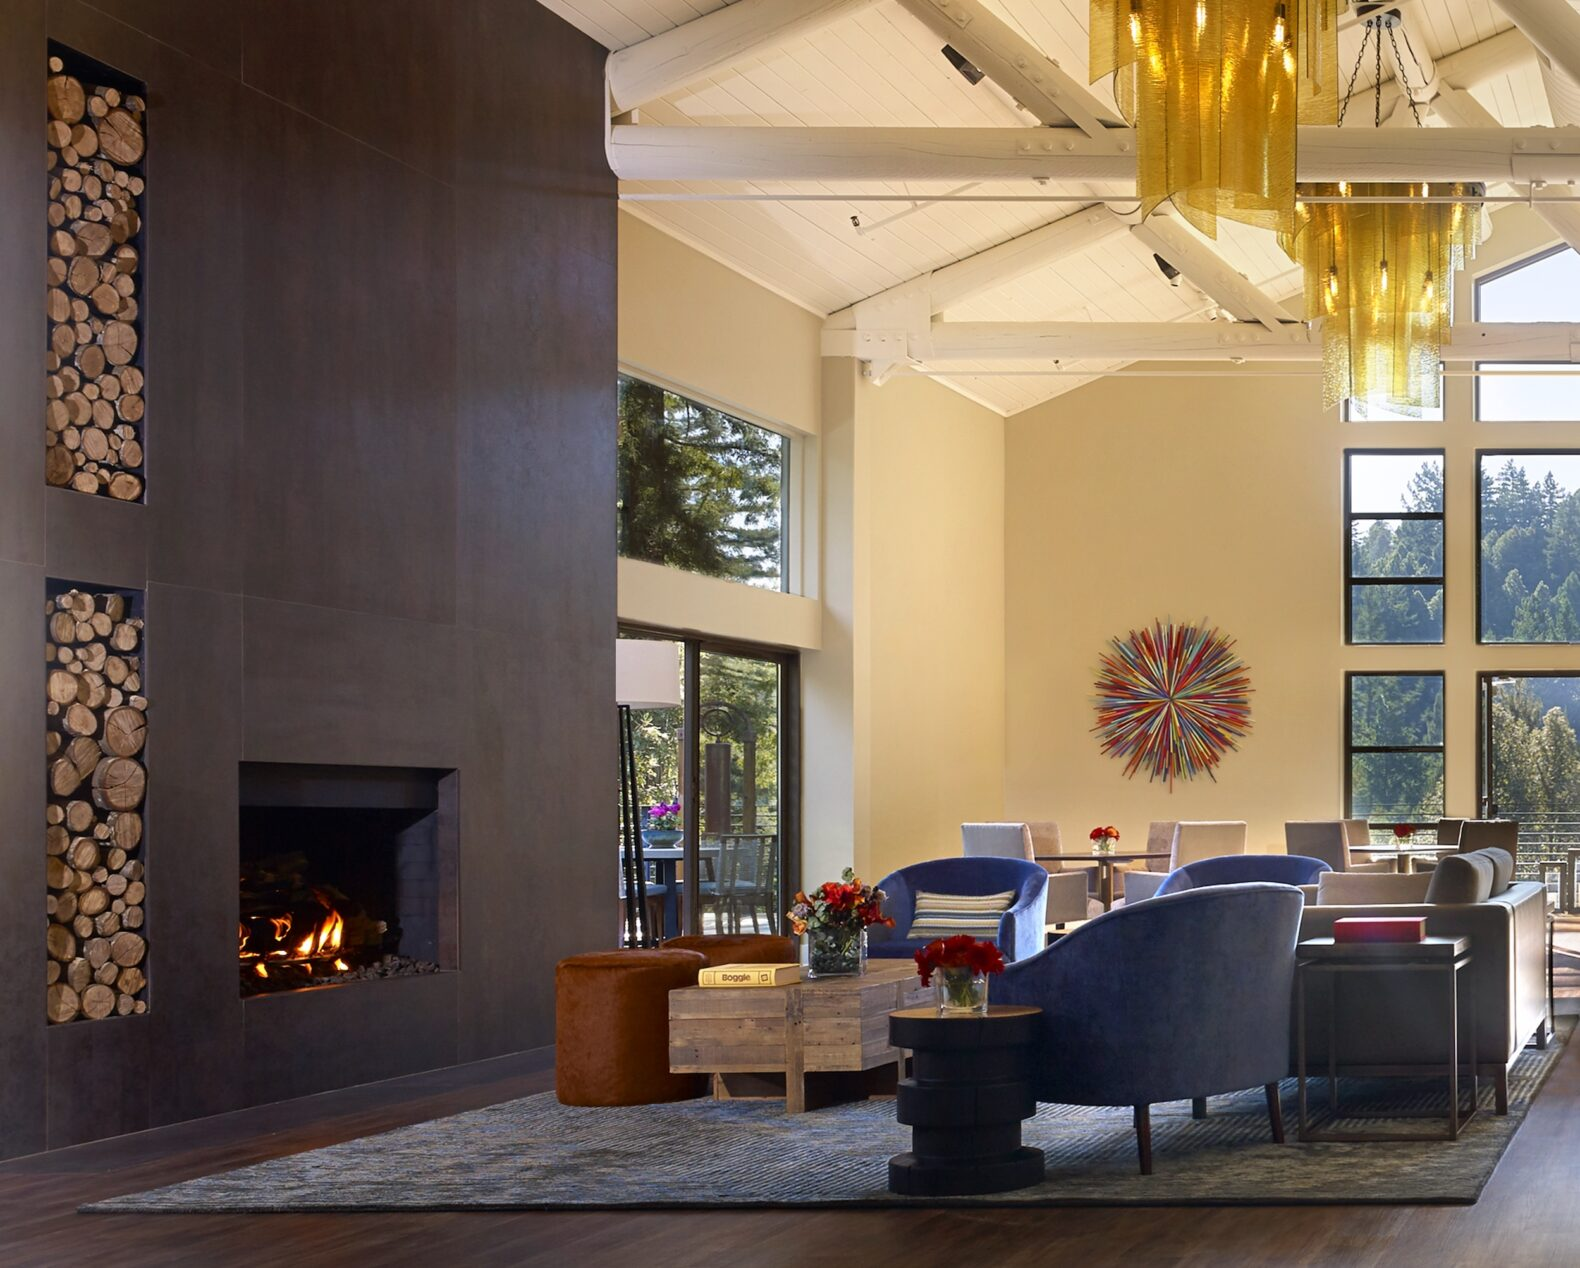 interior-loft-lounge-canyon-ranch-woodside-california-usa-new